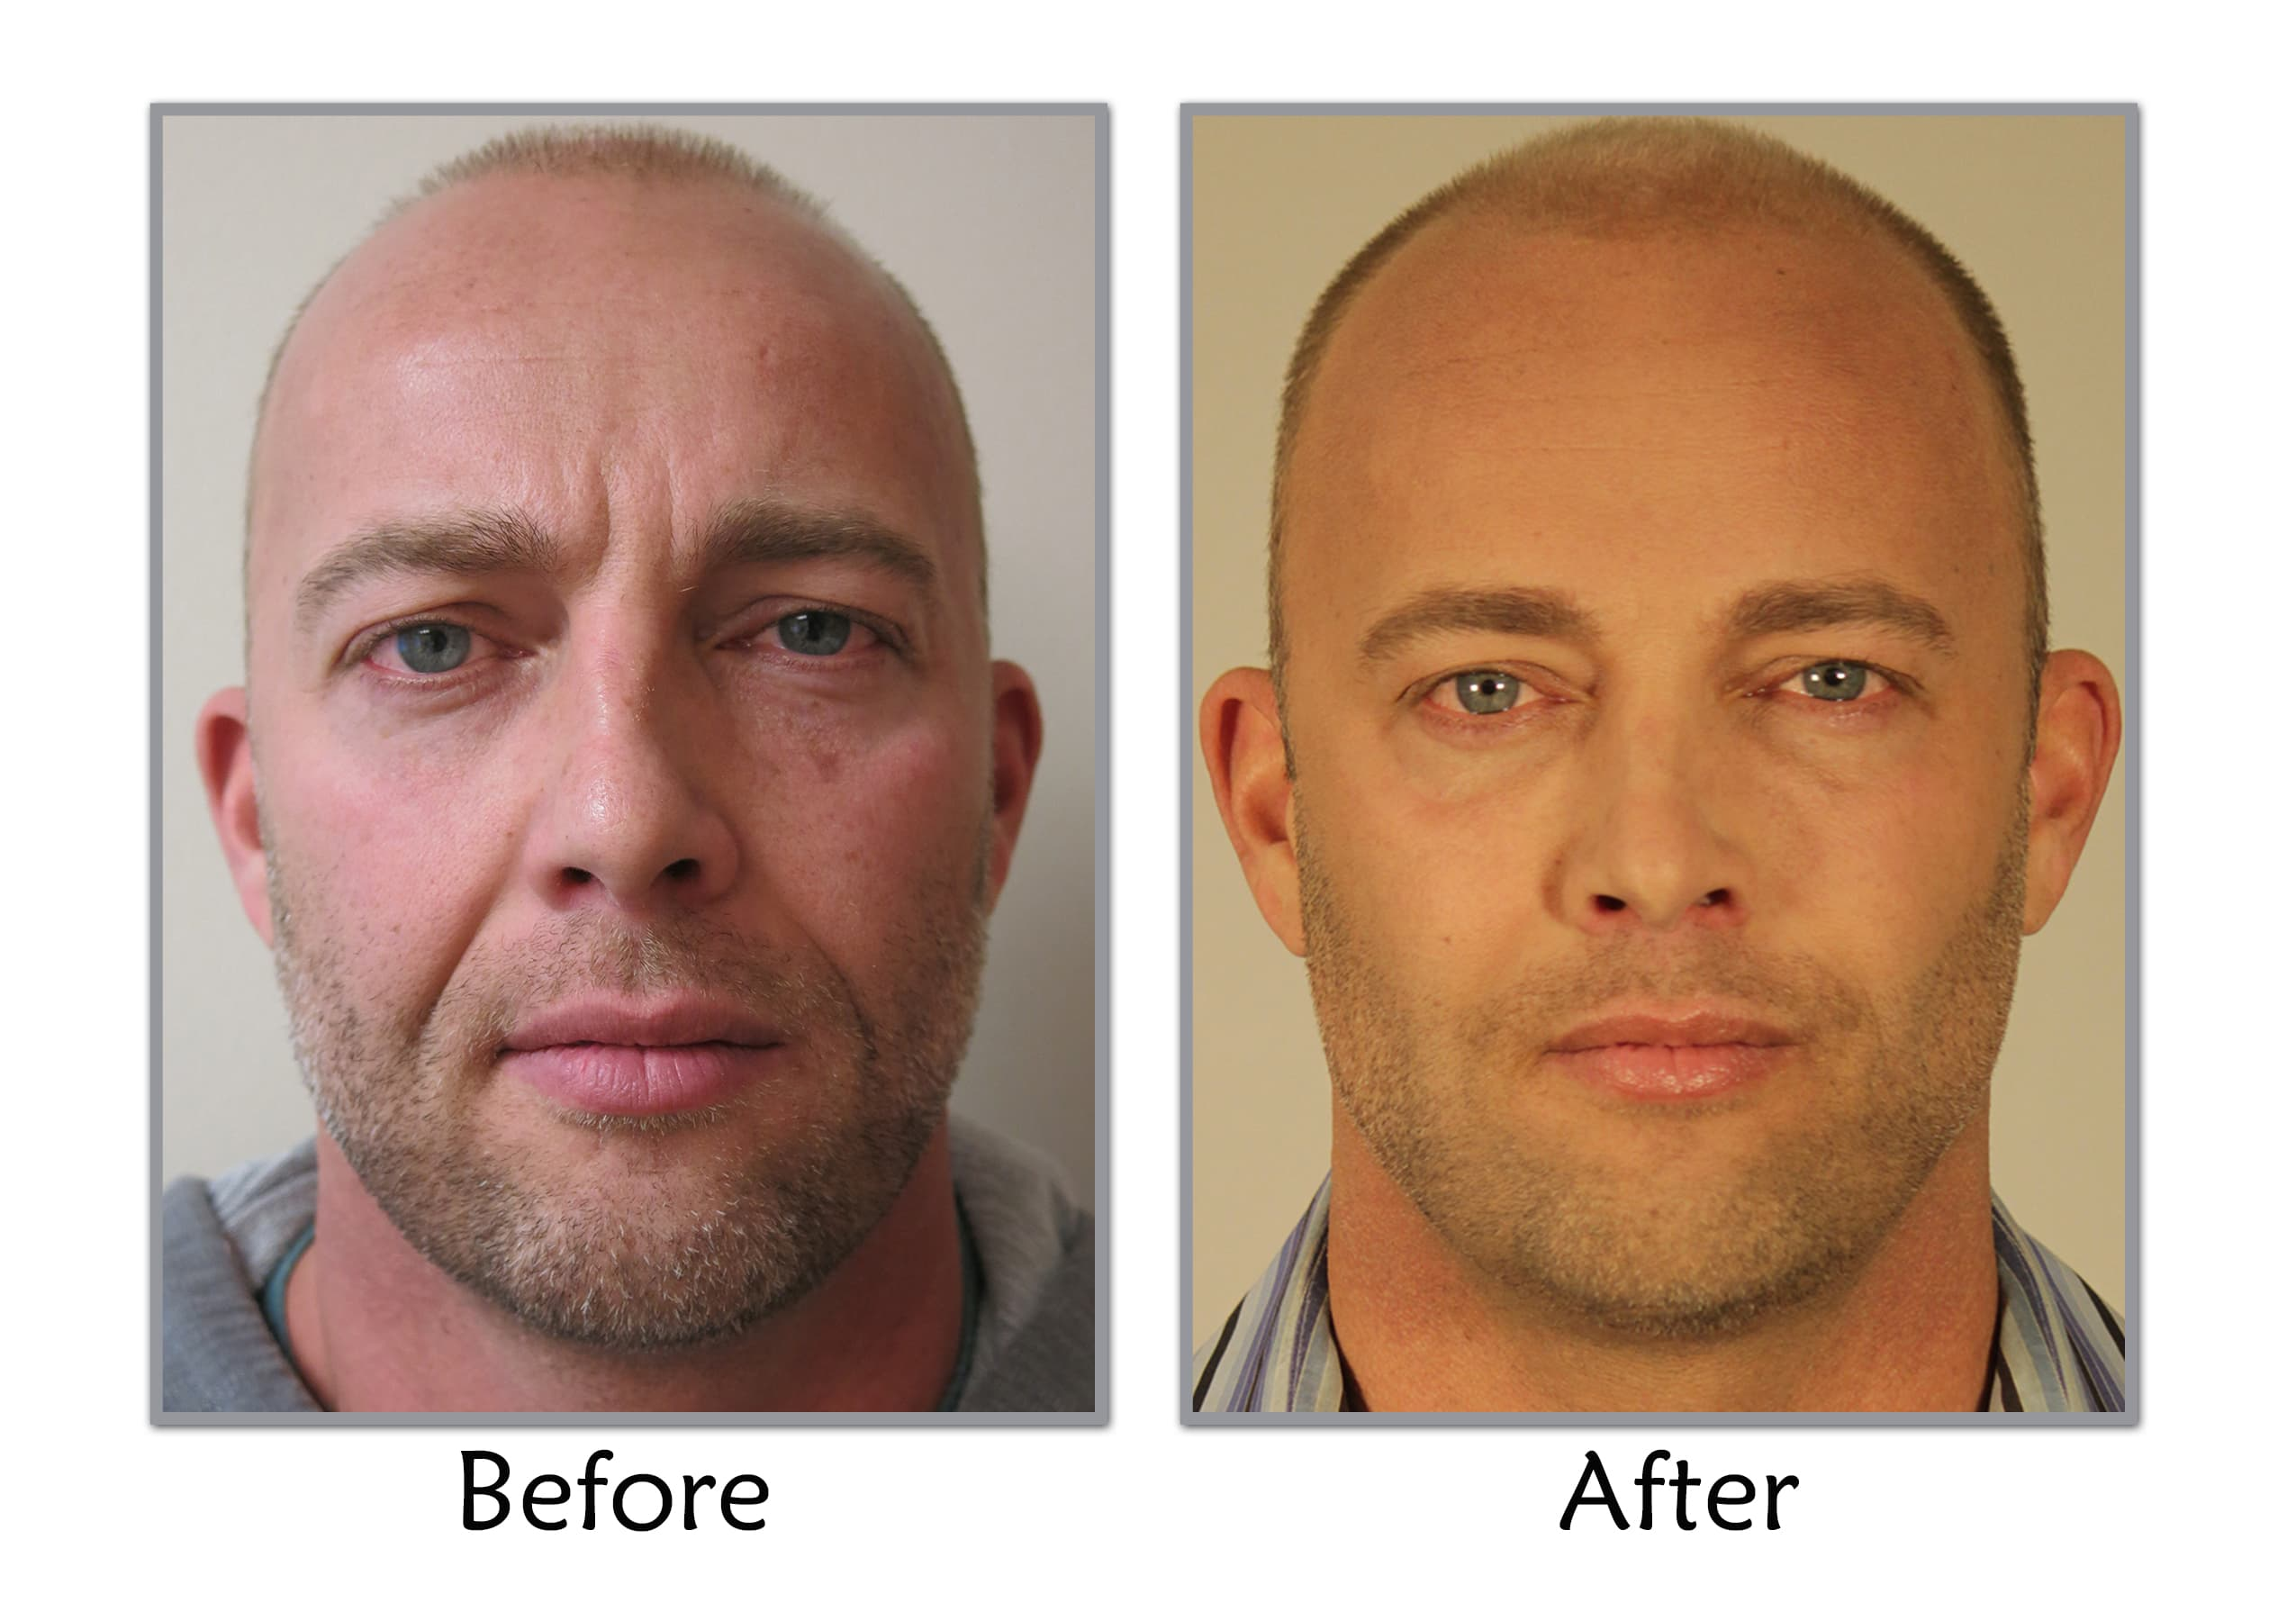 The Facial Plastic Surgery For Men In Turkey Before And After Pictures photo - 1